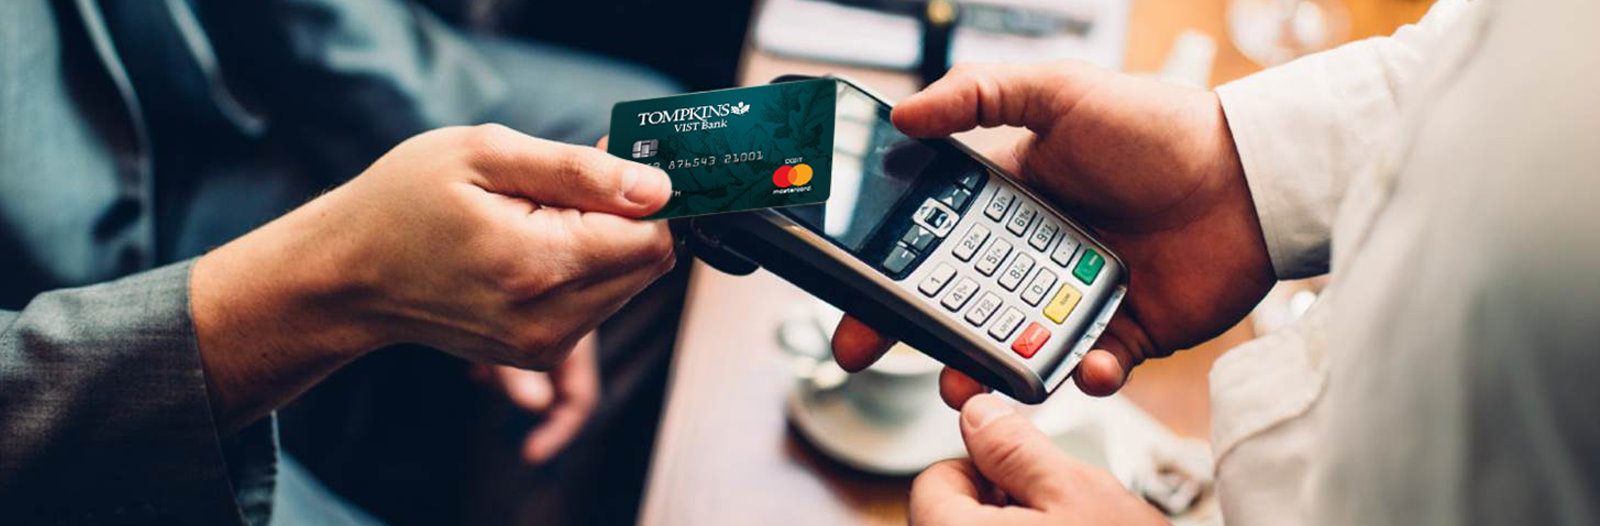 Tompkins VIST Bank debit mastercard in hand making purchase